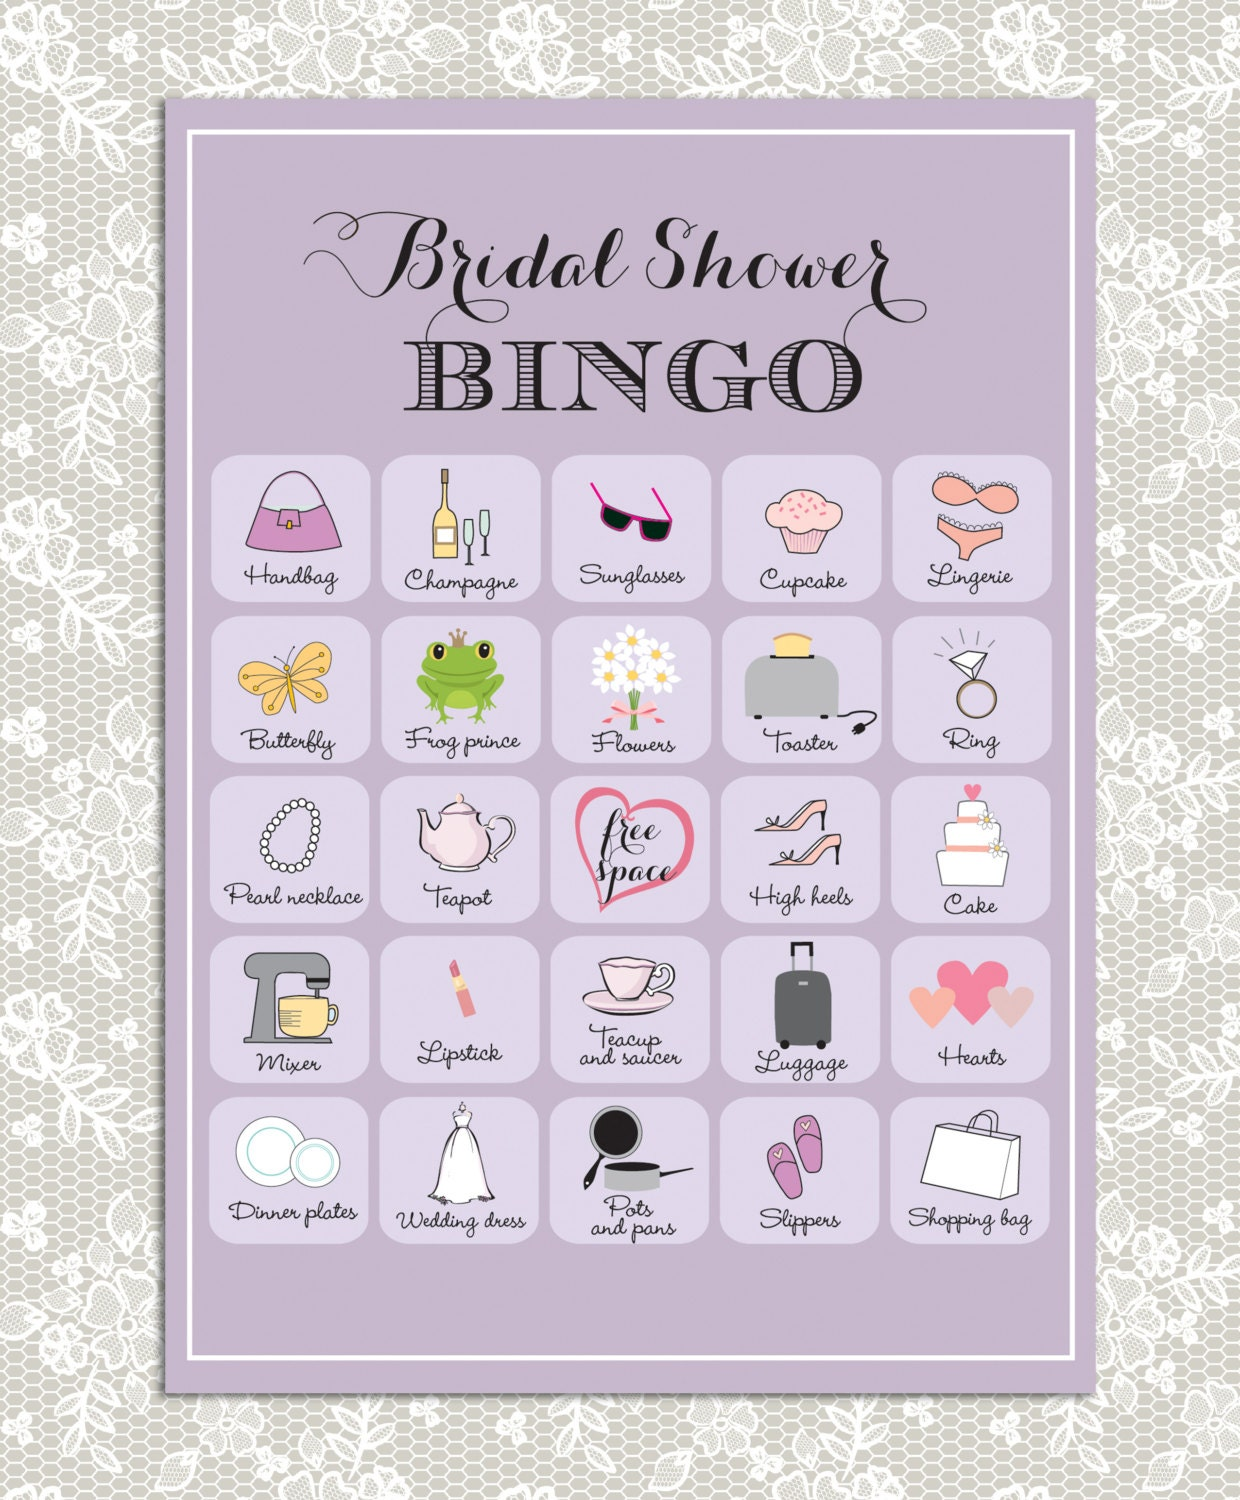 Epic image intended for bridal shower bingo free printable